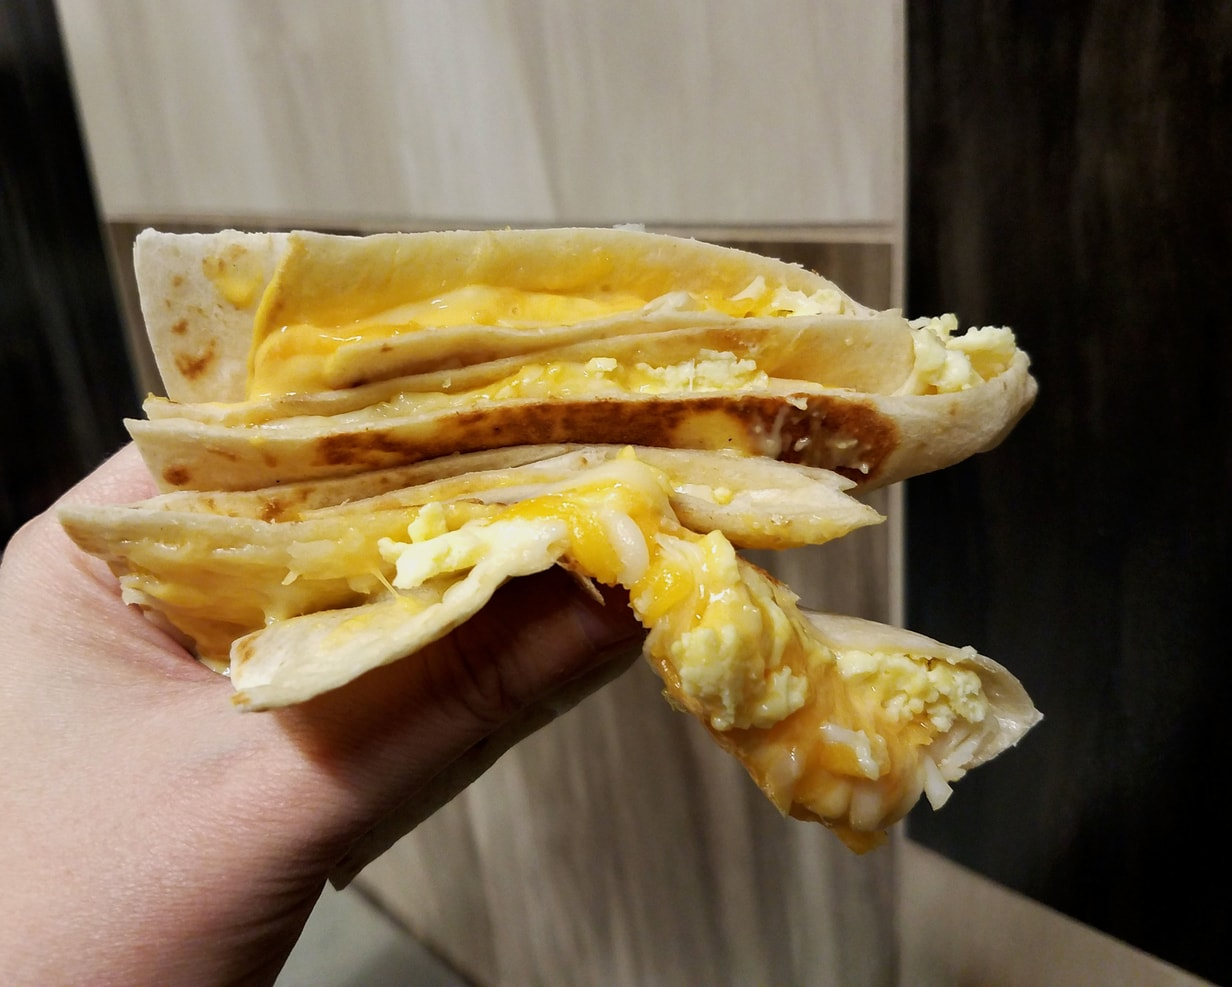 Christmas Breakfast Stackers Taco Bell Just Brought Back Ir Fan Breakfast Stackers Taco Bell Breakfast Time 2018 Taco Bell Breakfast Menu Time nice food Taco Bell Breakfast Time